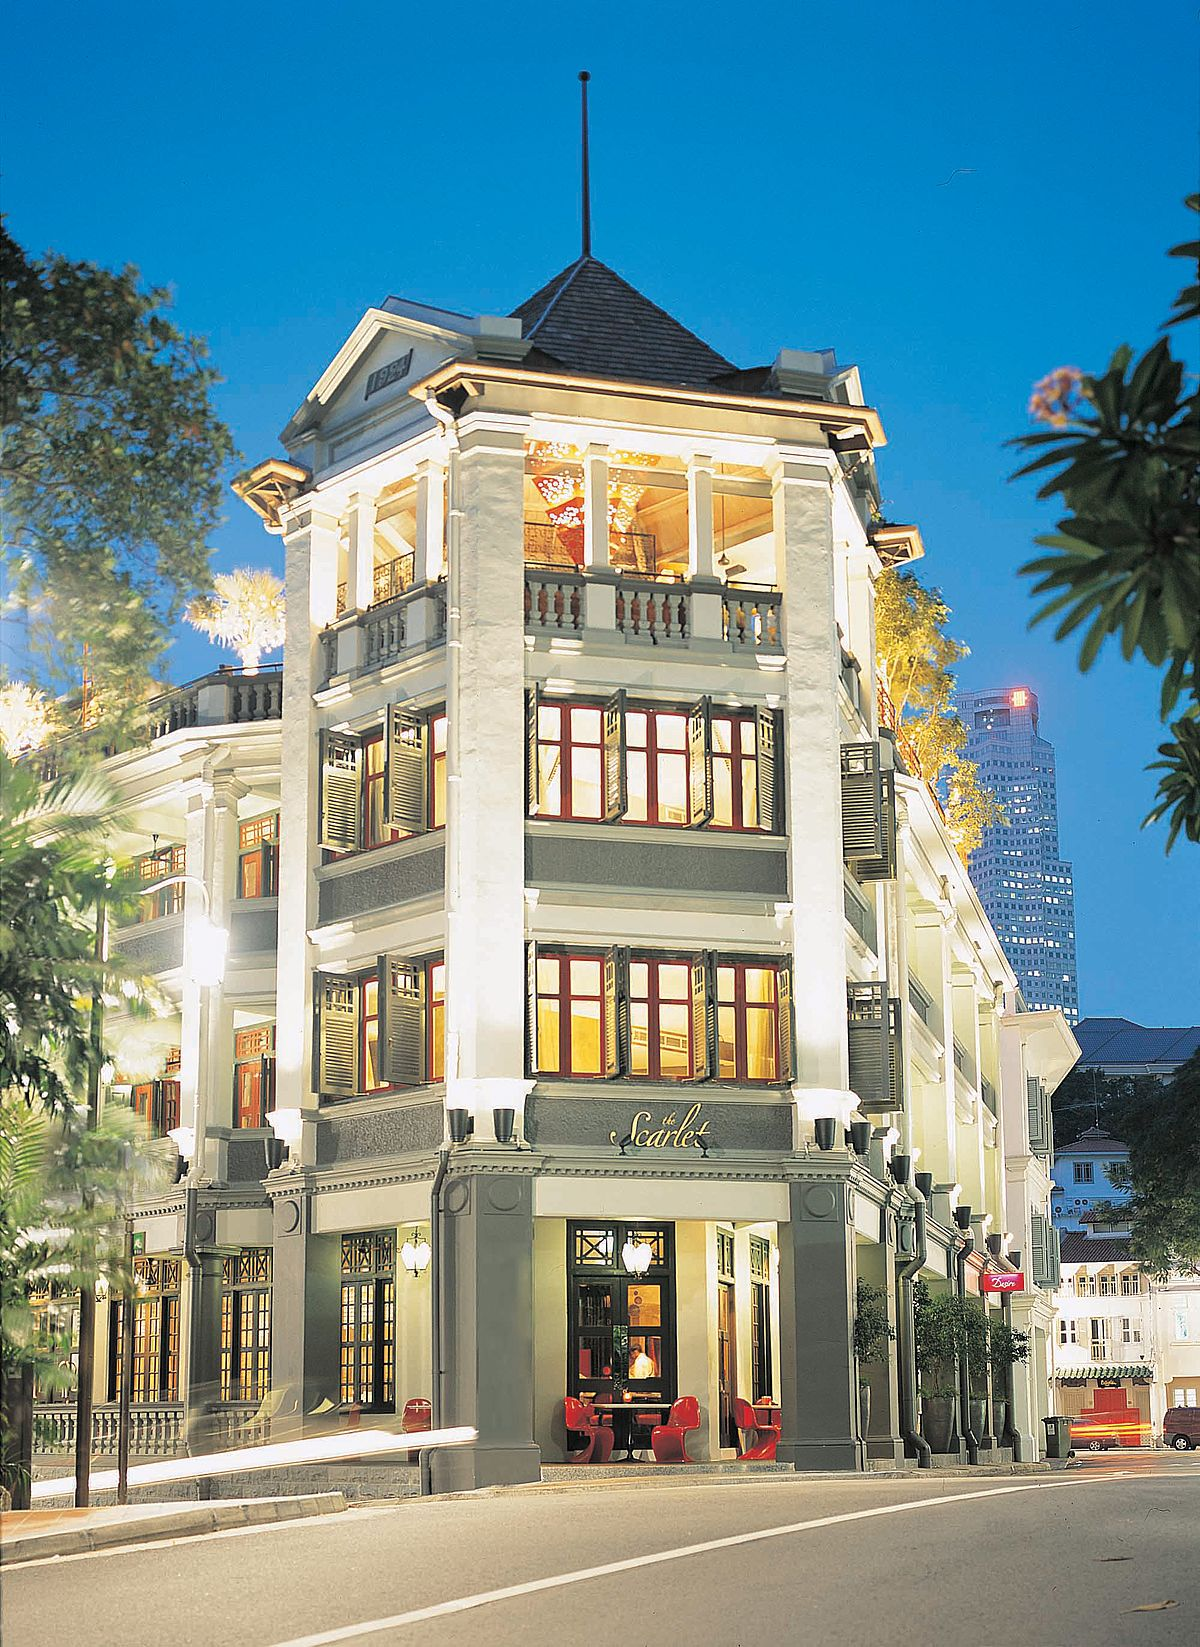 The scarlet singapore wikipedia for Small luxury hotel group